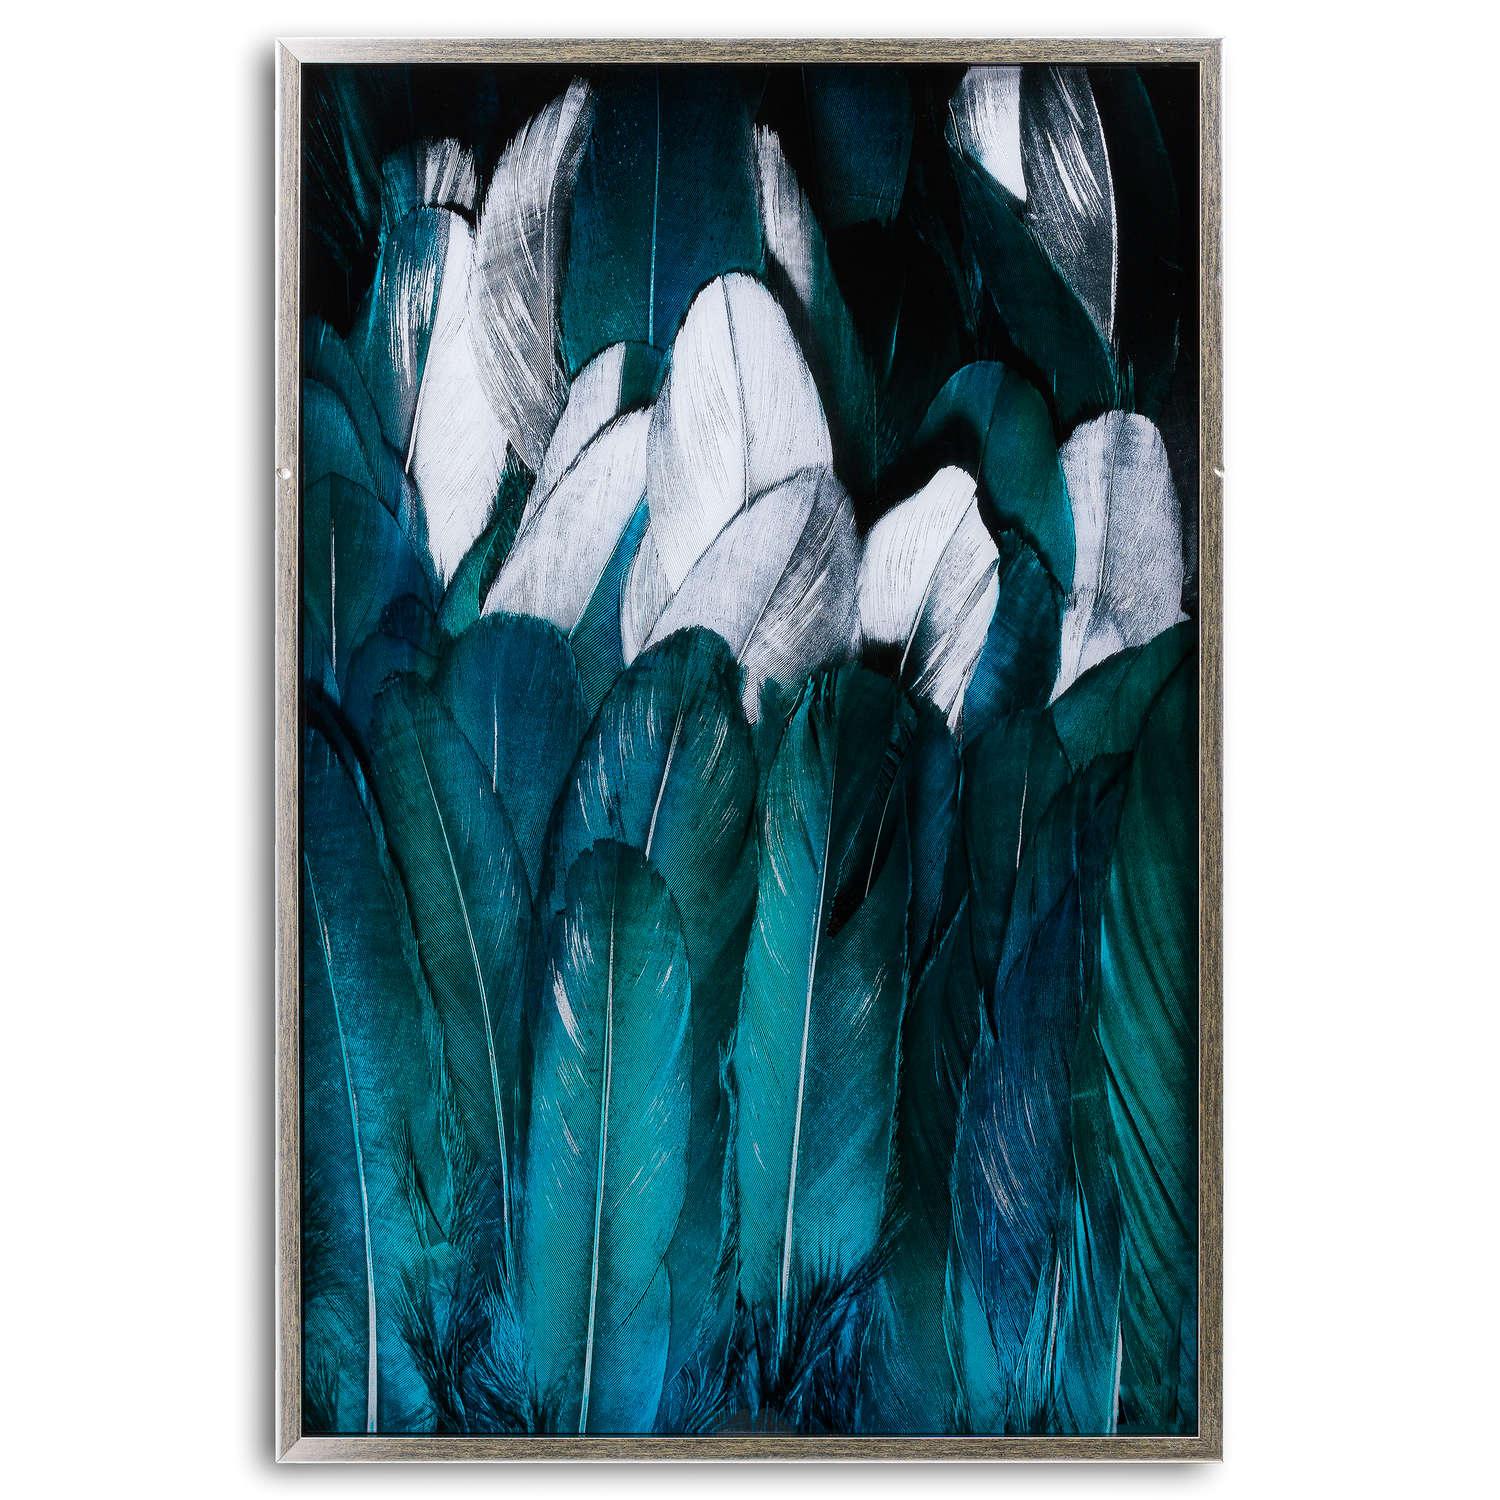 Teal And Silver Feather Glass Image In Silver Frame